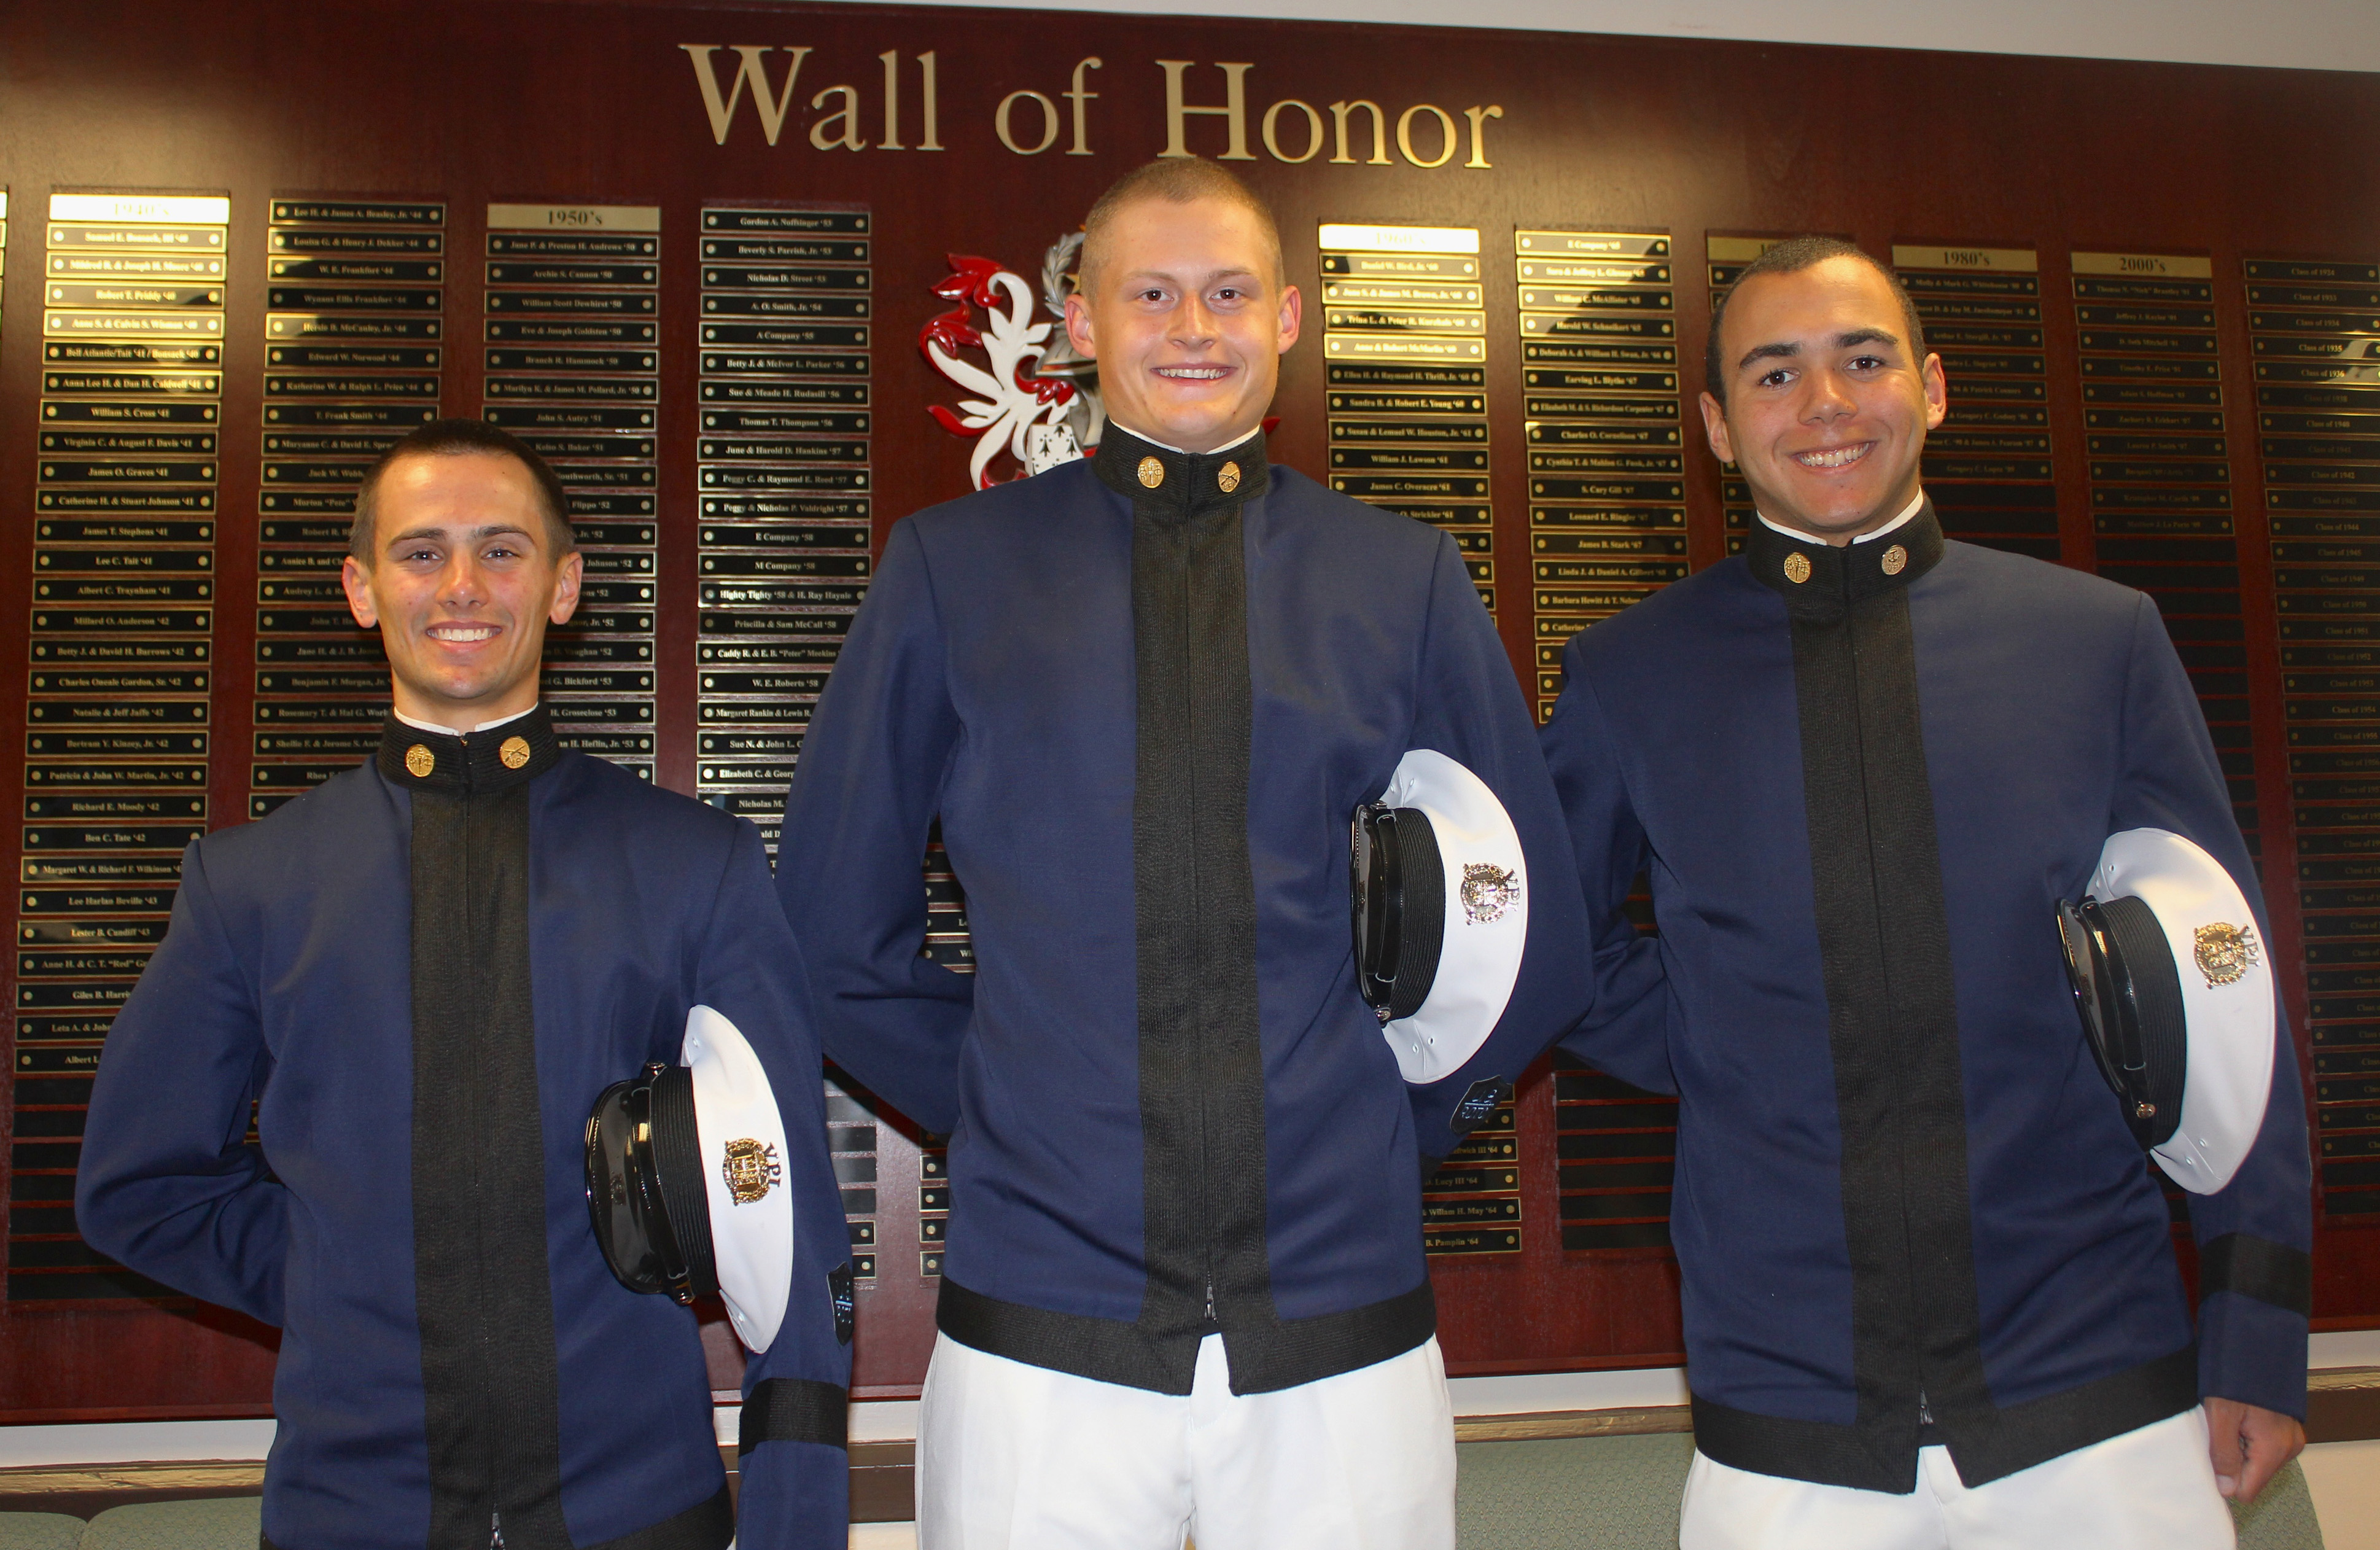 From left to right are Cadets Myers, Libby, and Rodriquez in Brodie Hall